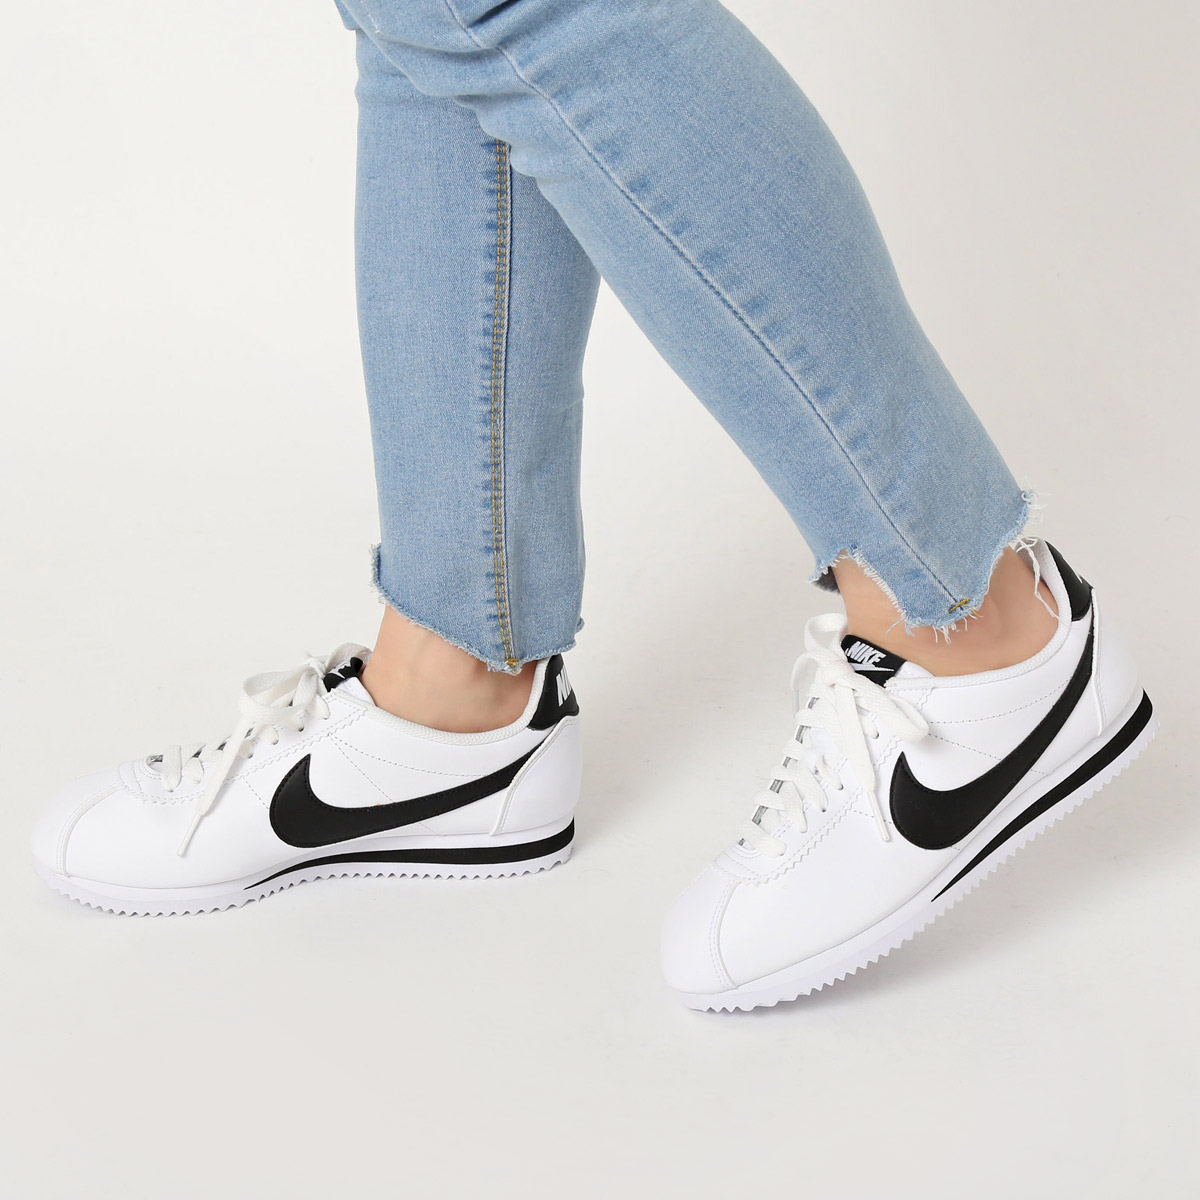 new arrival 855a7 77b06 NIKE WMNS CLASSIC CORTEZ LEATHER (Cortez Nike womens classic leather) WHITE  BLACK-WHITE 16HO-I